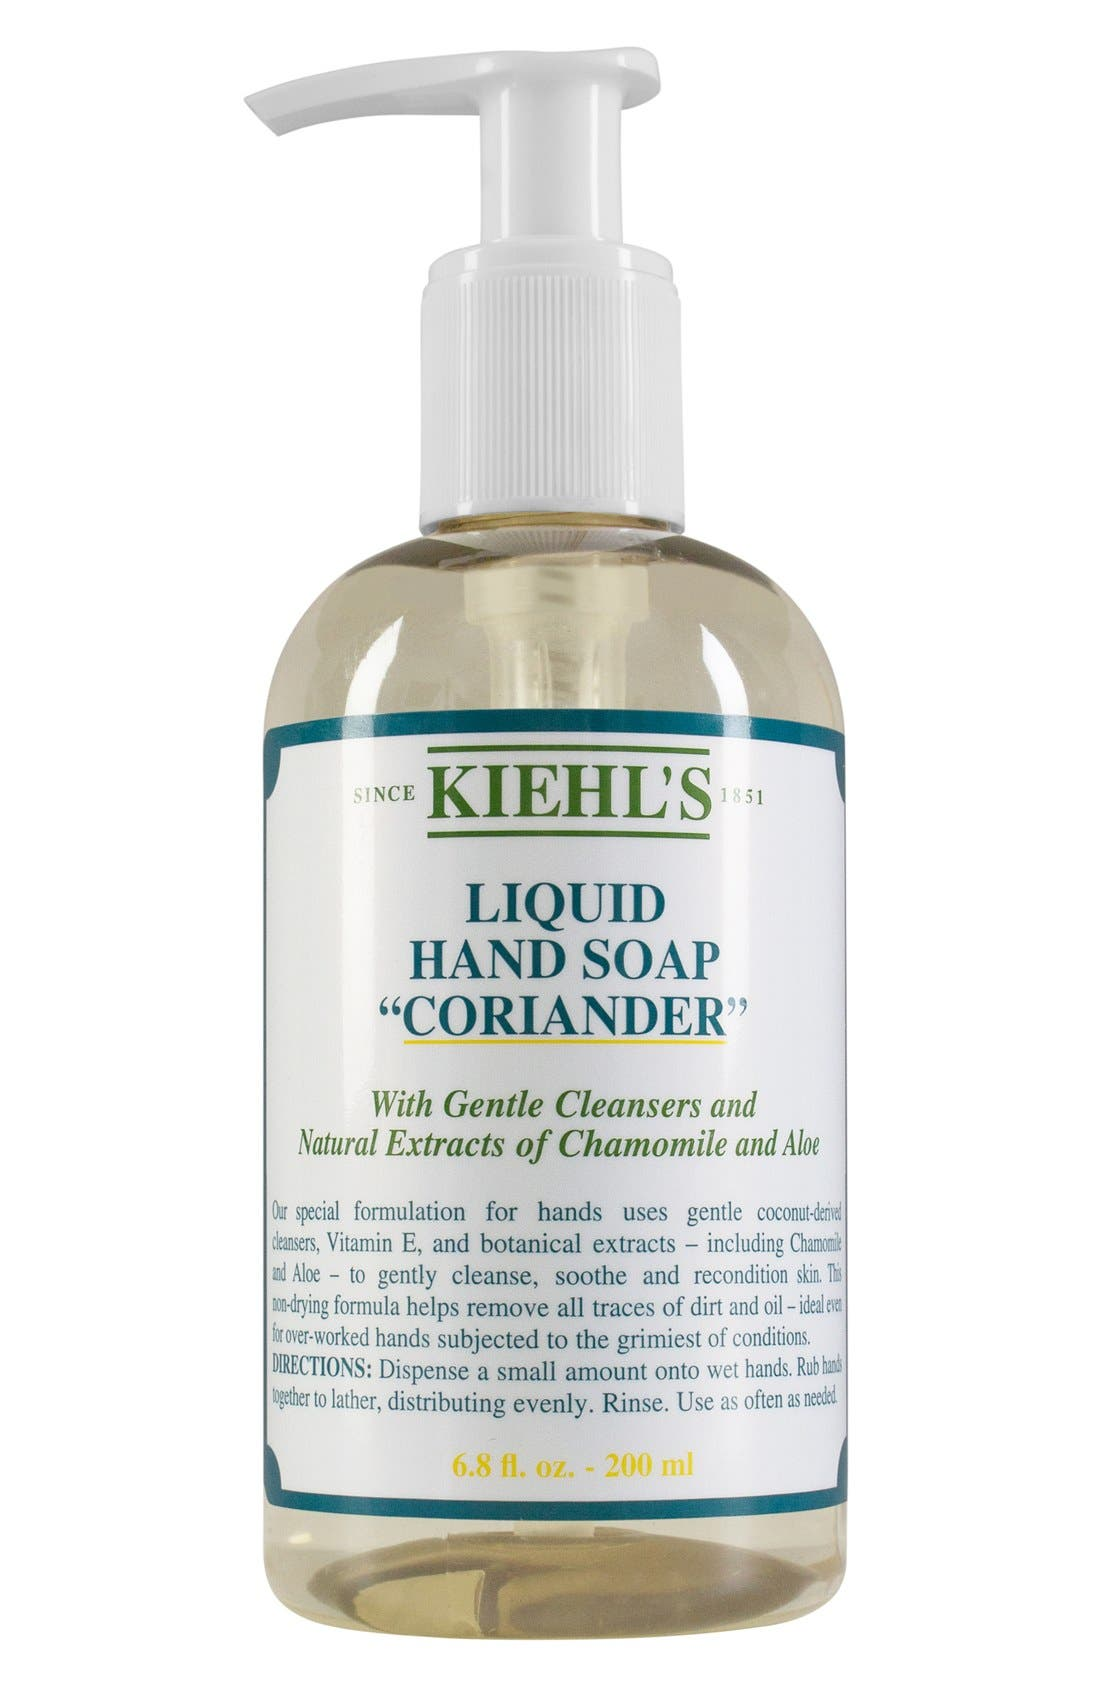 Kiehl's Since 1851 Liquid Hand Soap (Coriander)